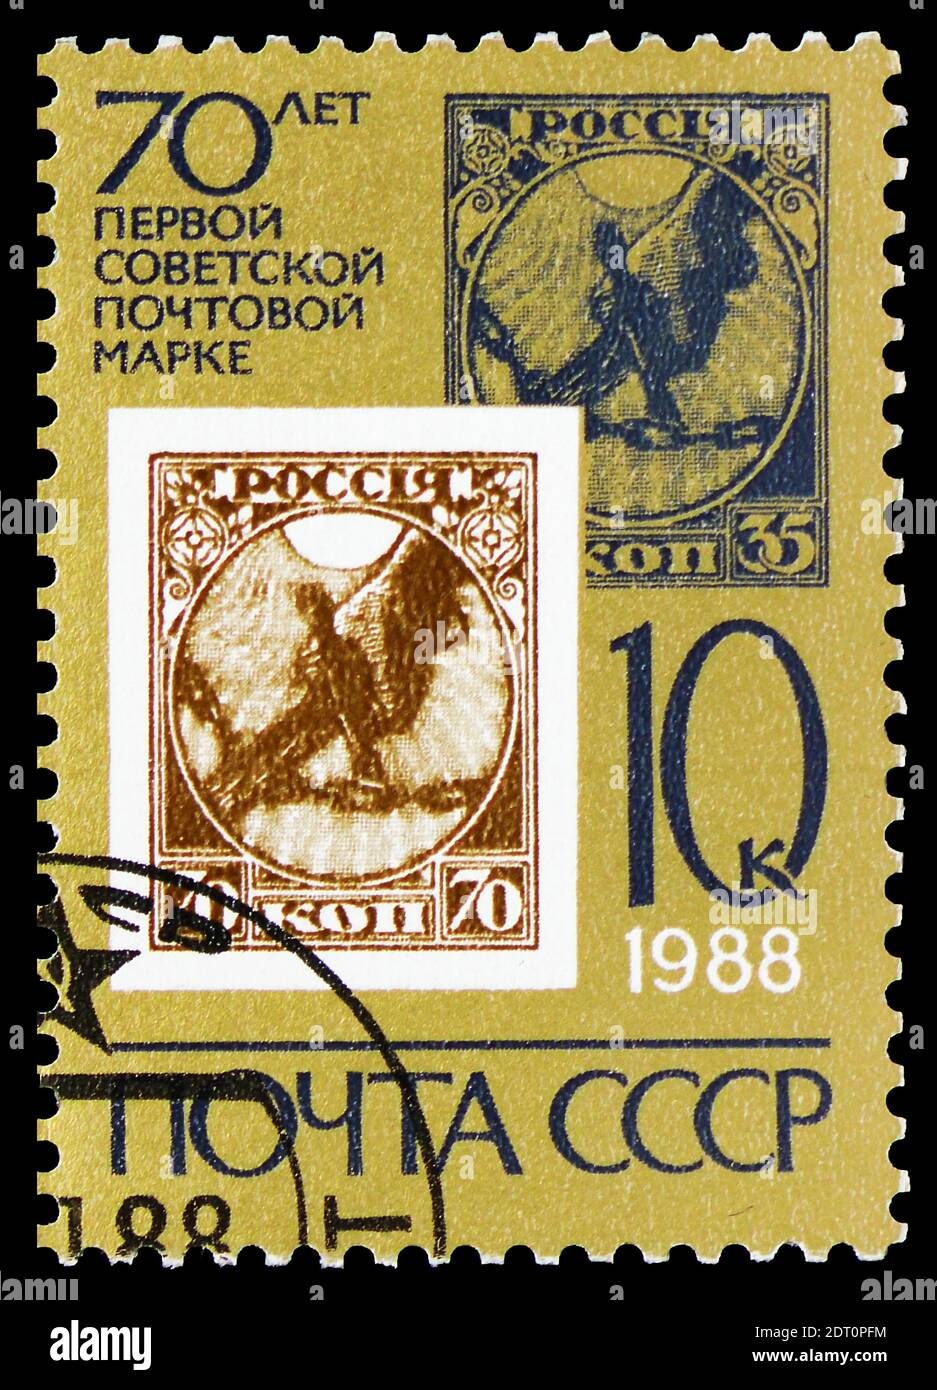 MOSCOW, RUSSIA - FEBRUARY 23, 2019: A stamp printed in Soviet Union shows 70th Anniversary of First Soviet Stamp, serie, circa 1988 Stock Photo